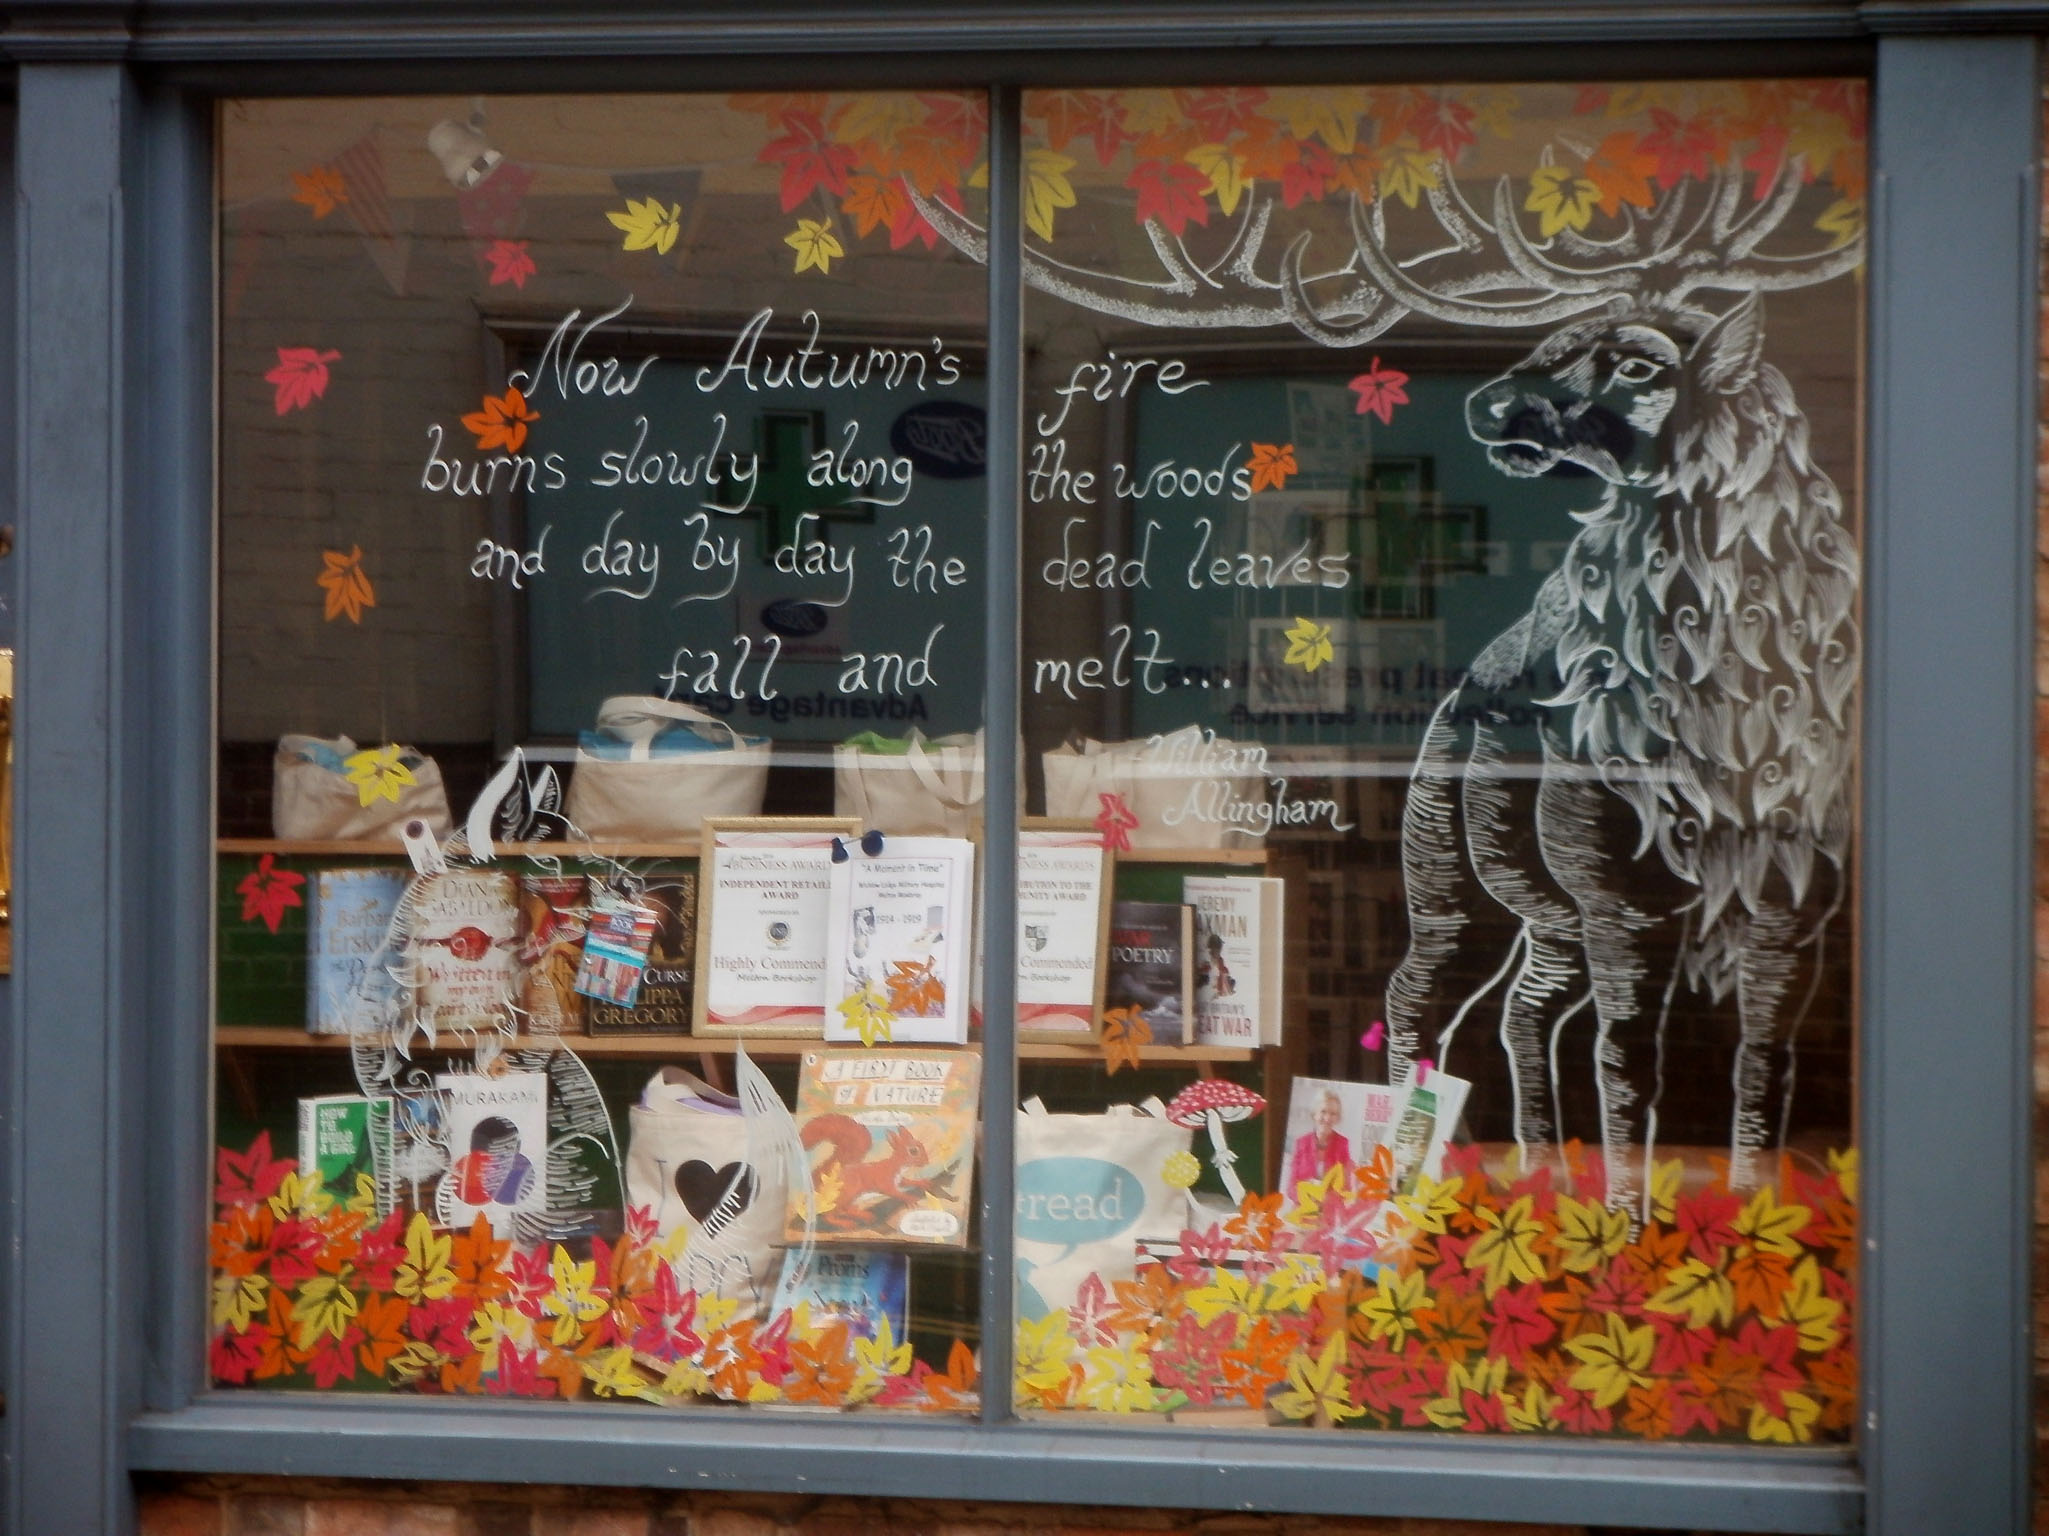 "A window display that sends an autumn message about how fast the leaves are ""melting"", with a deer drawn, describing the best way this season."